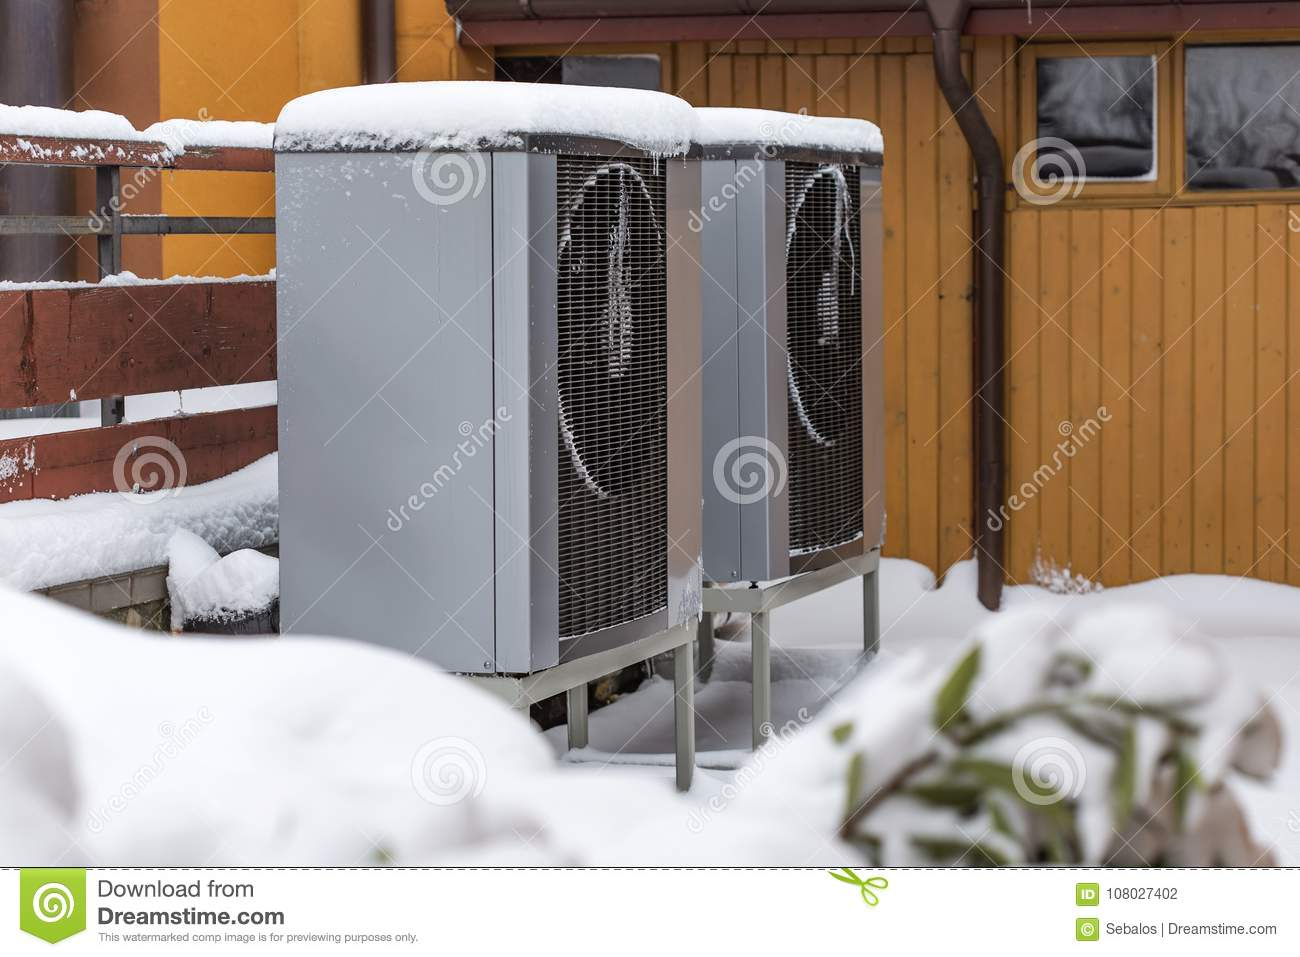 Two Residential Modern Heat Pumps Stock Photo Image Of Compressor Wiring Electric Buried In Snow Winter